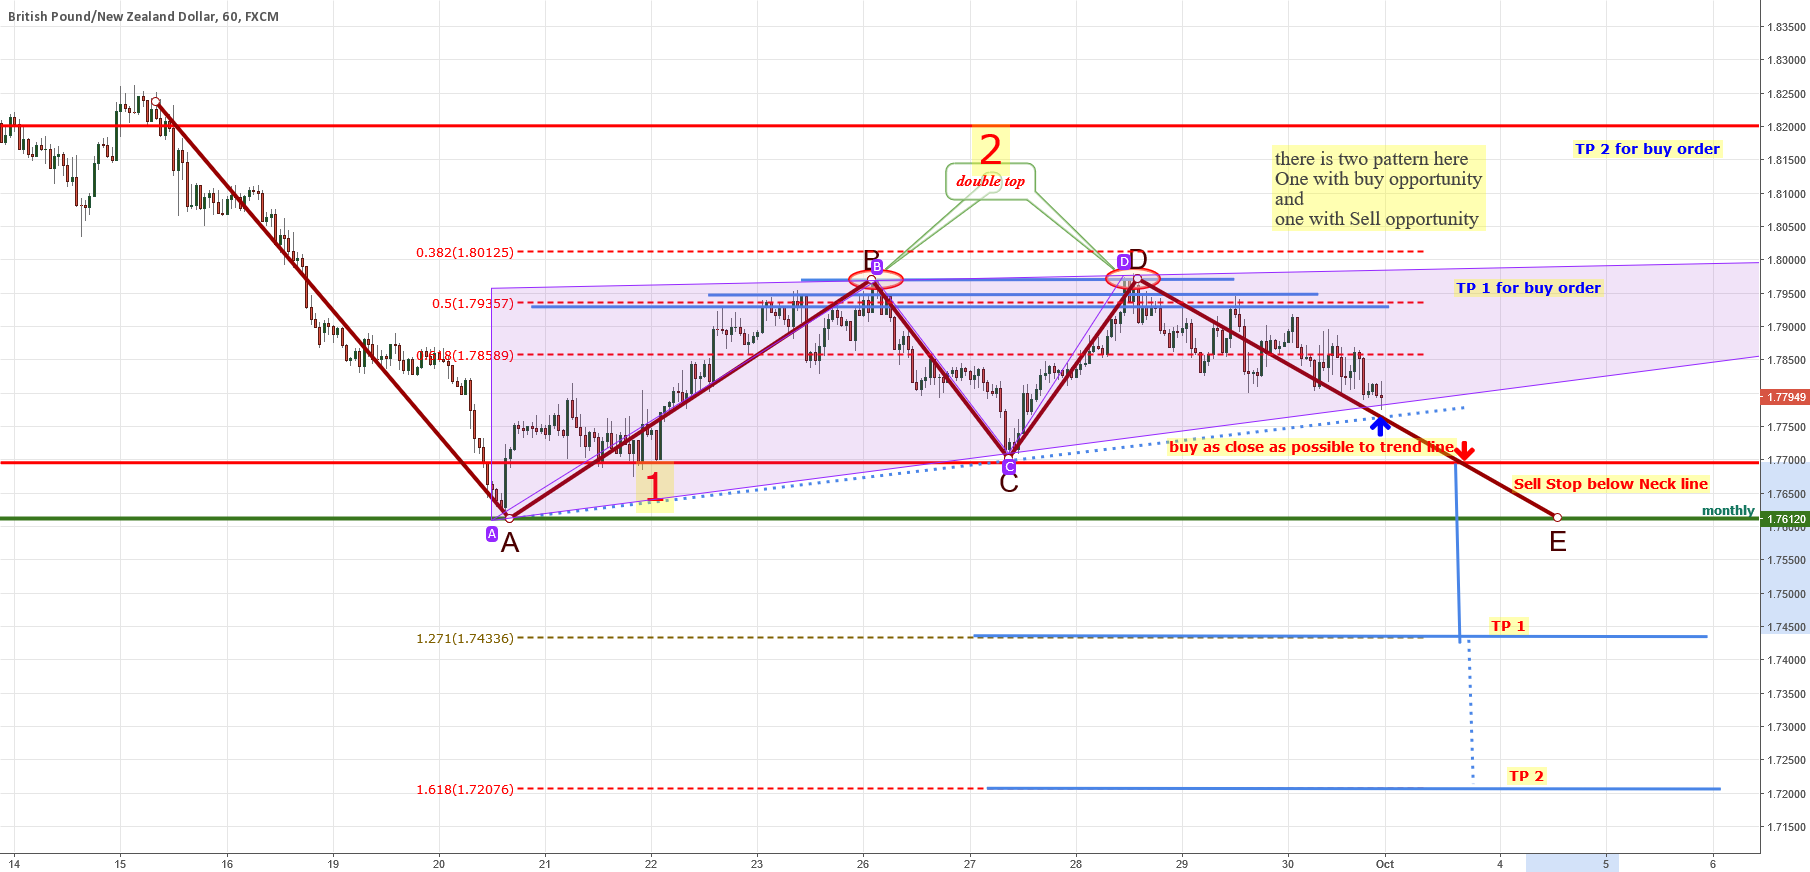 GBPNZD buy and sell set up